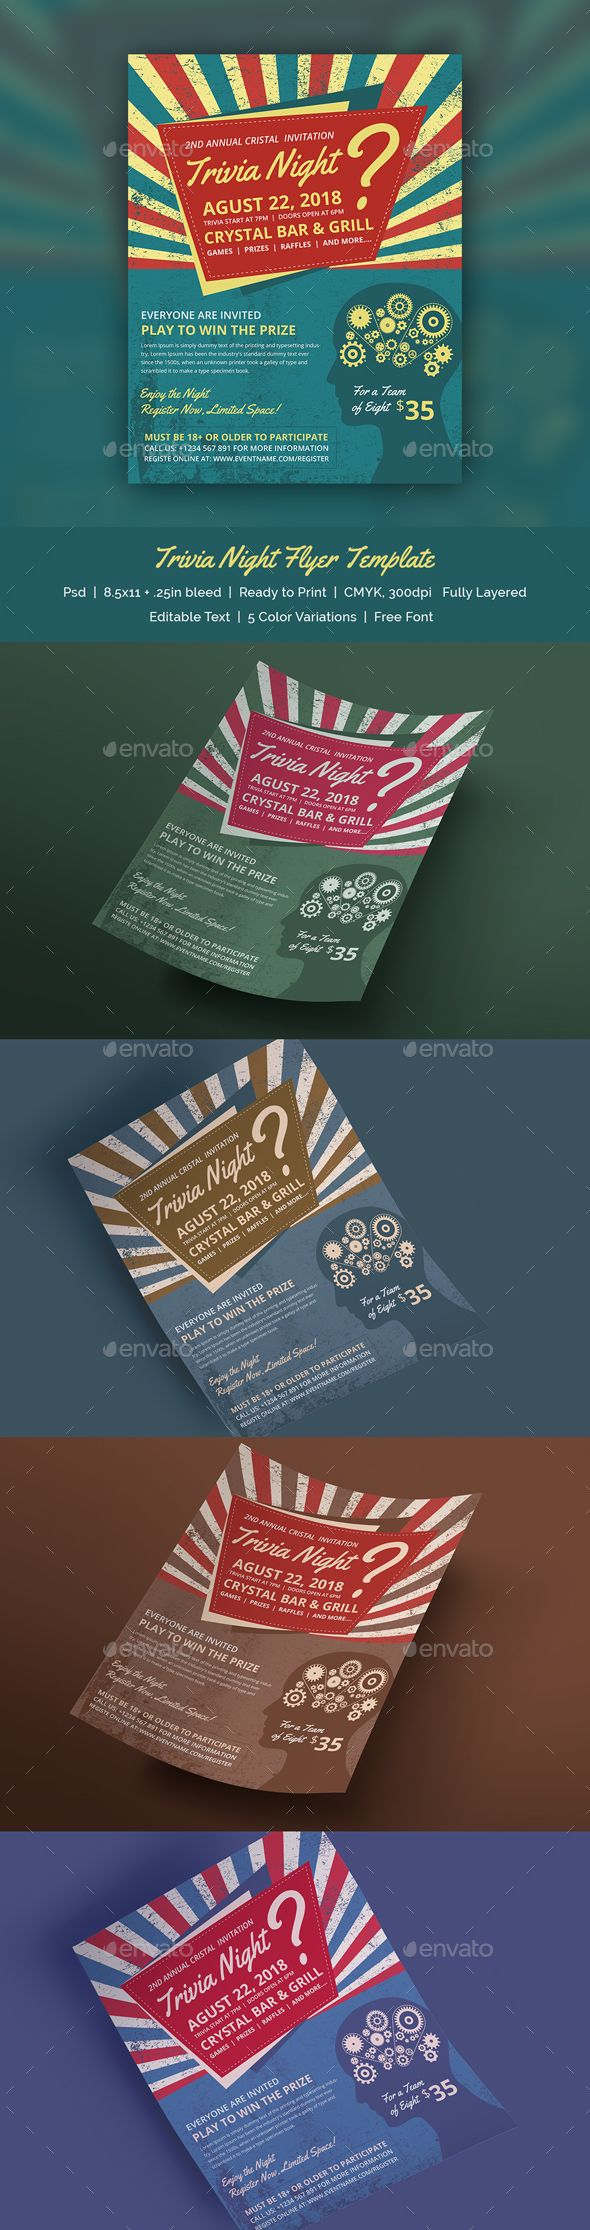 Trivia #Night #Flyer #Template - Print Templates Download here: https://graphicriver.net/item/trivia-night-flyer-template/19520962?ref=alena994